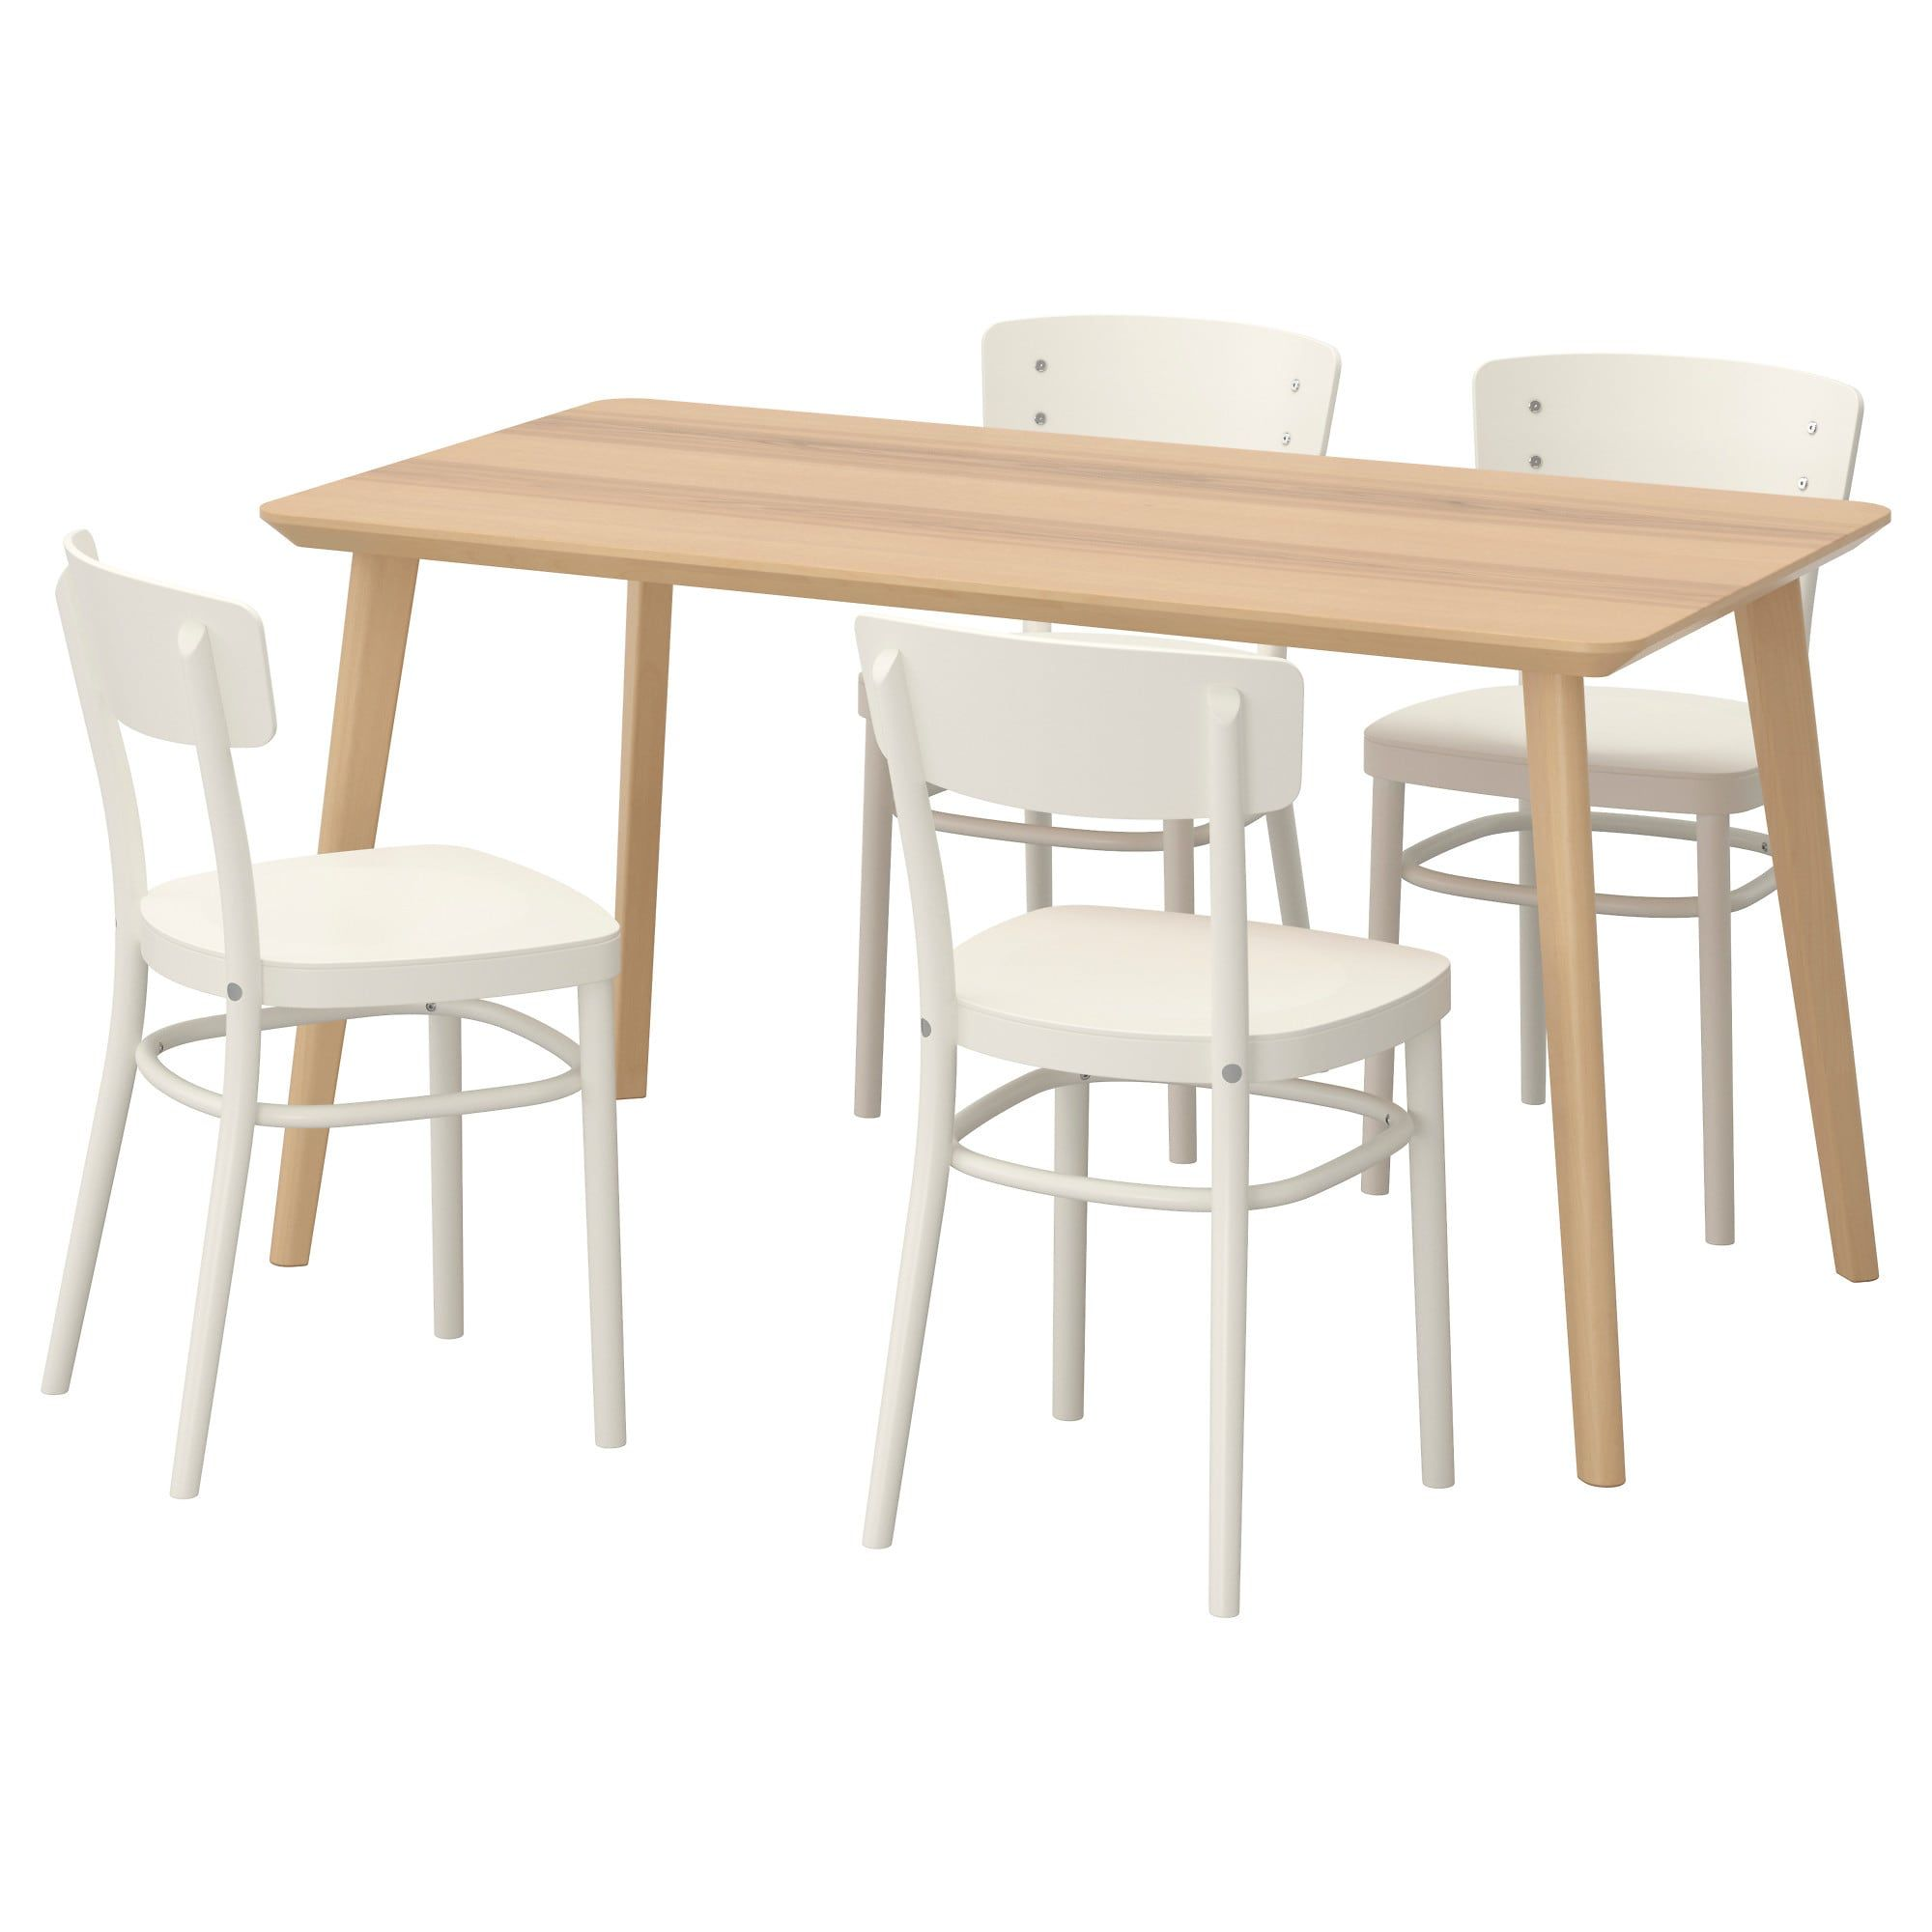 Cool Furniture And Home Furnishings Hause In 2019 Ikea Table Alphanode Cool Chair Designs And Ideas Alphanodeonline